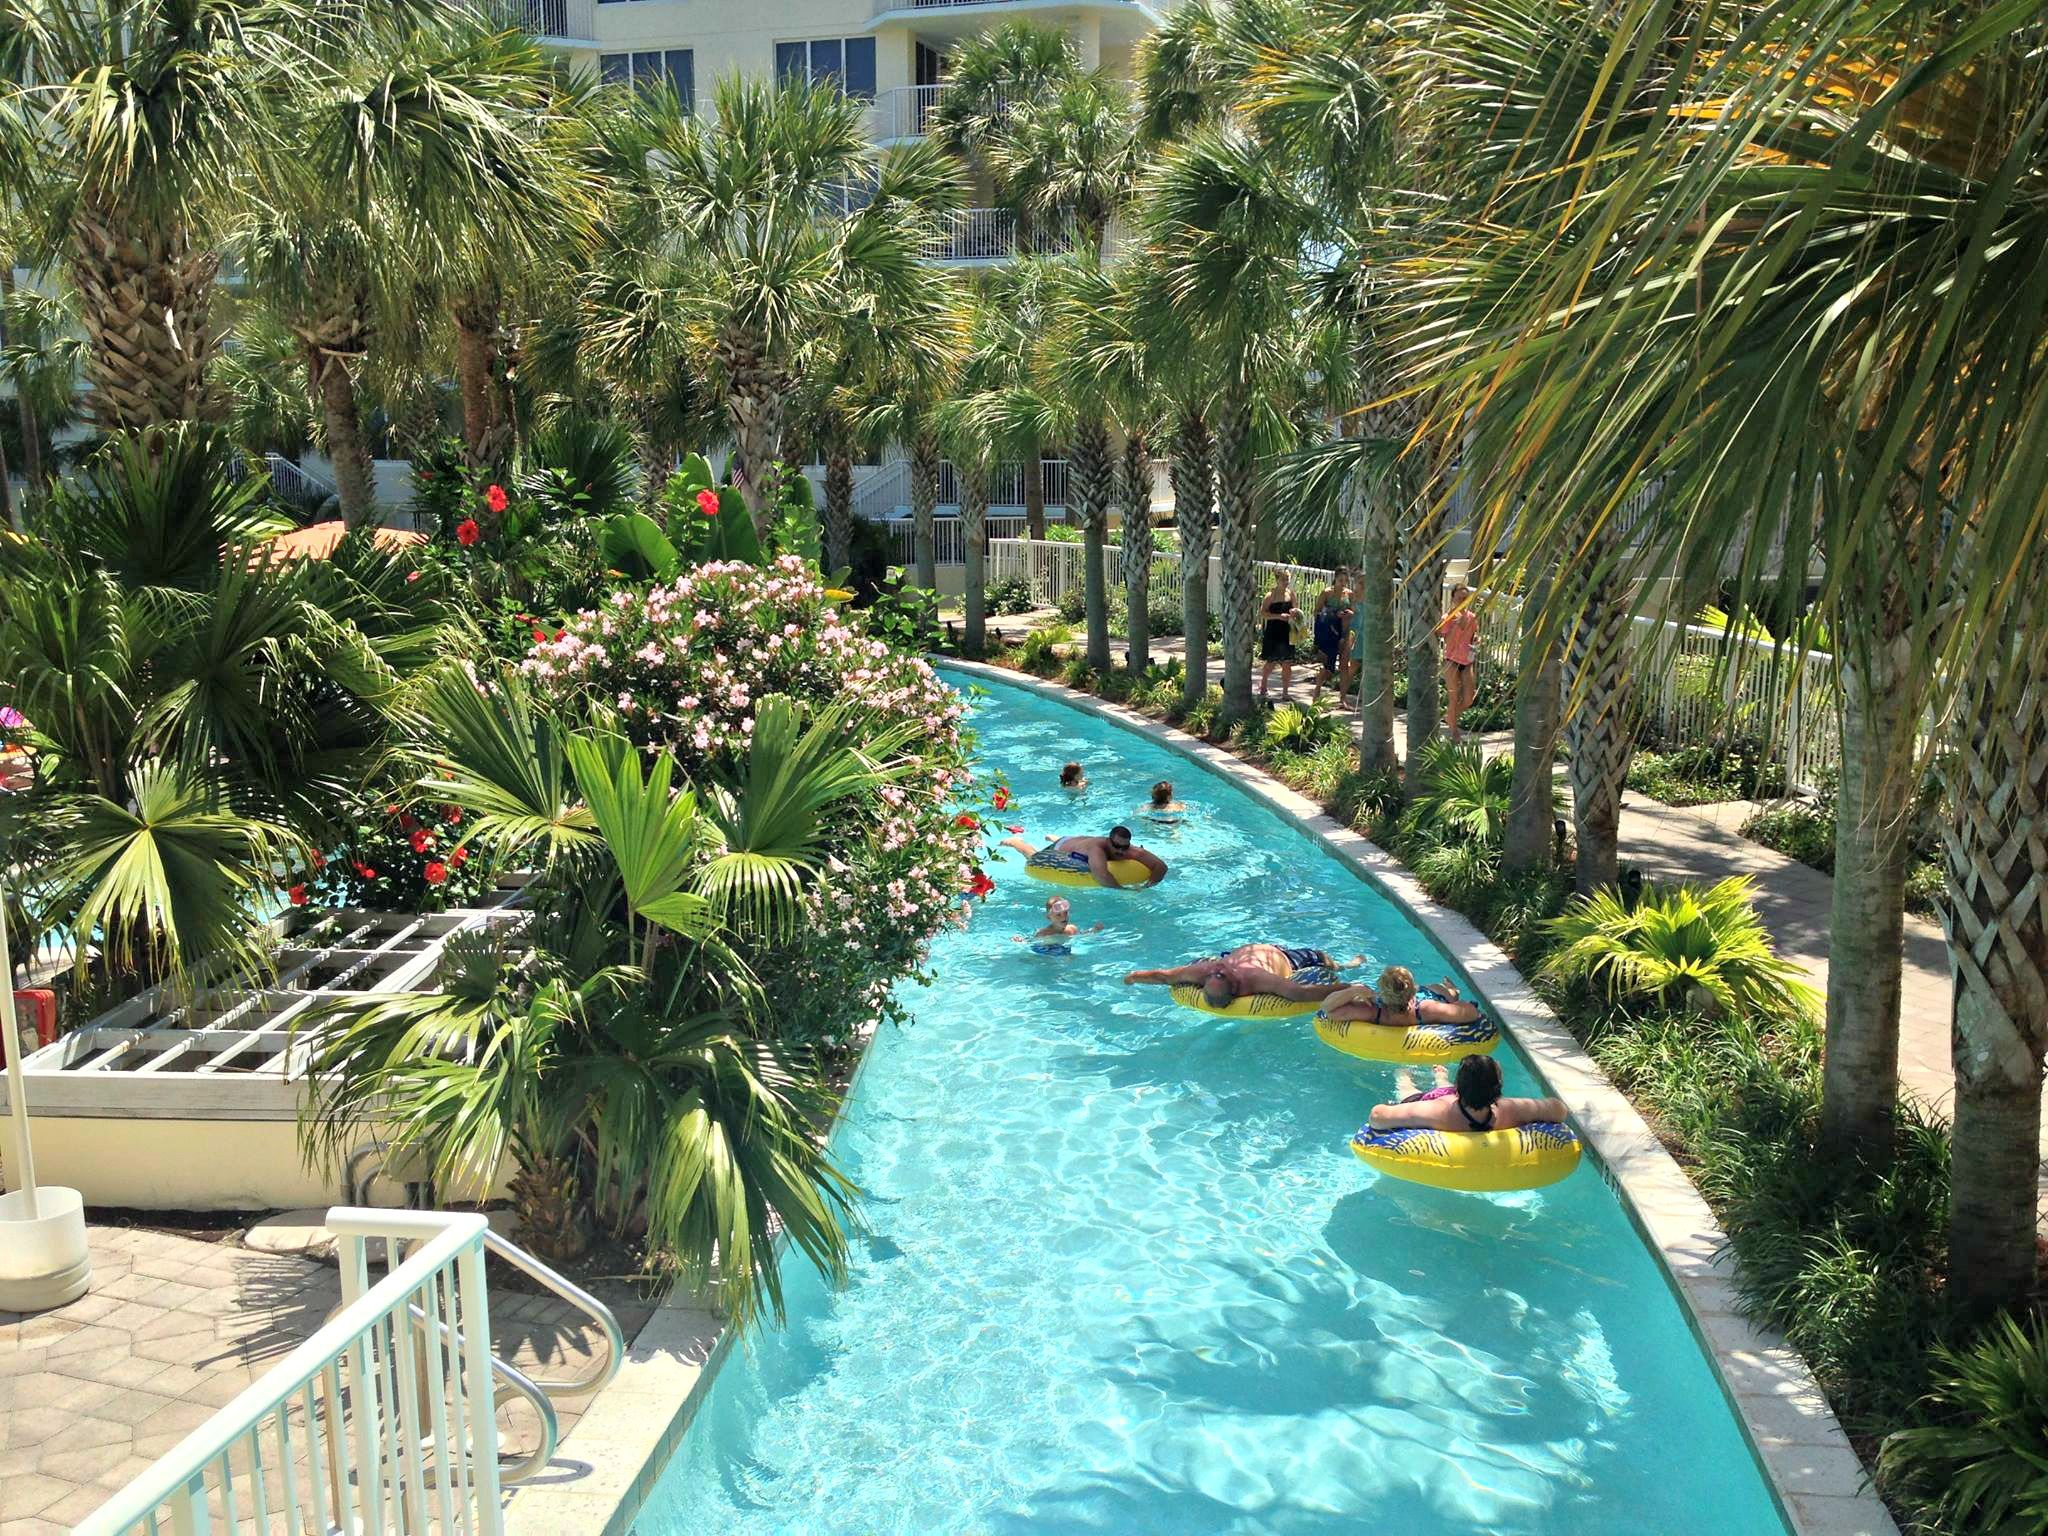 Places To Stay In Myrtle Beach With Lazy River